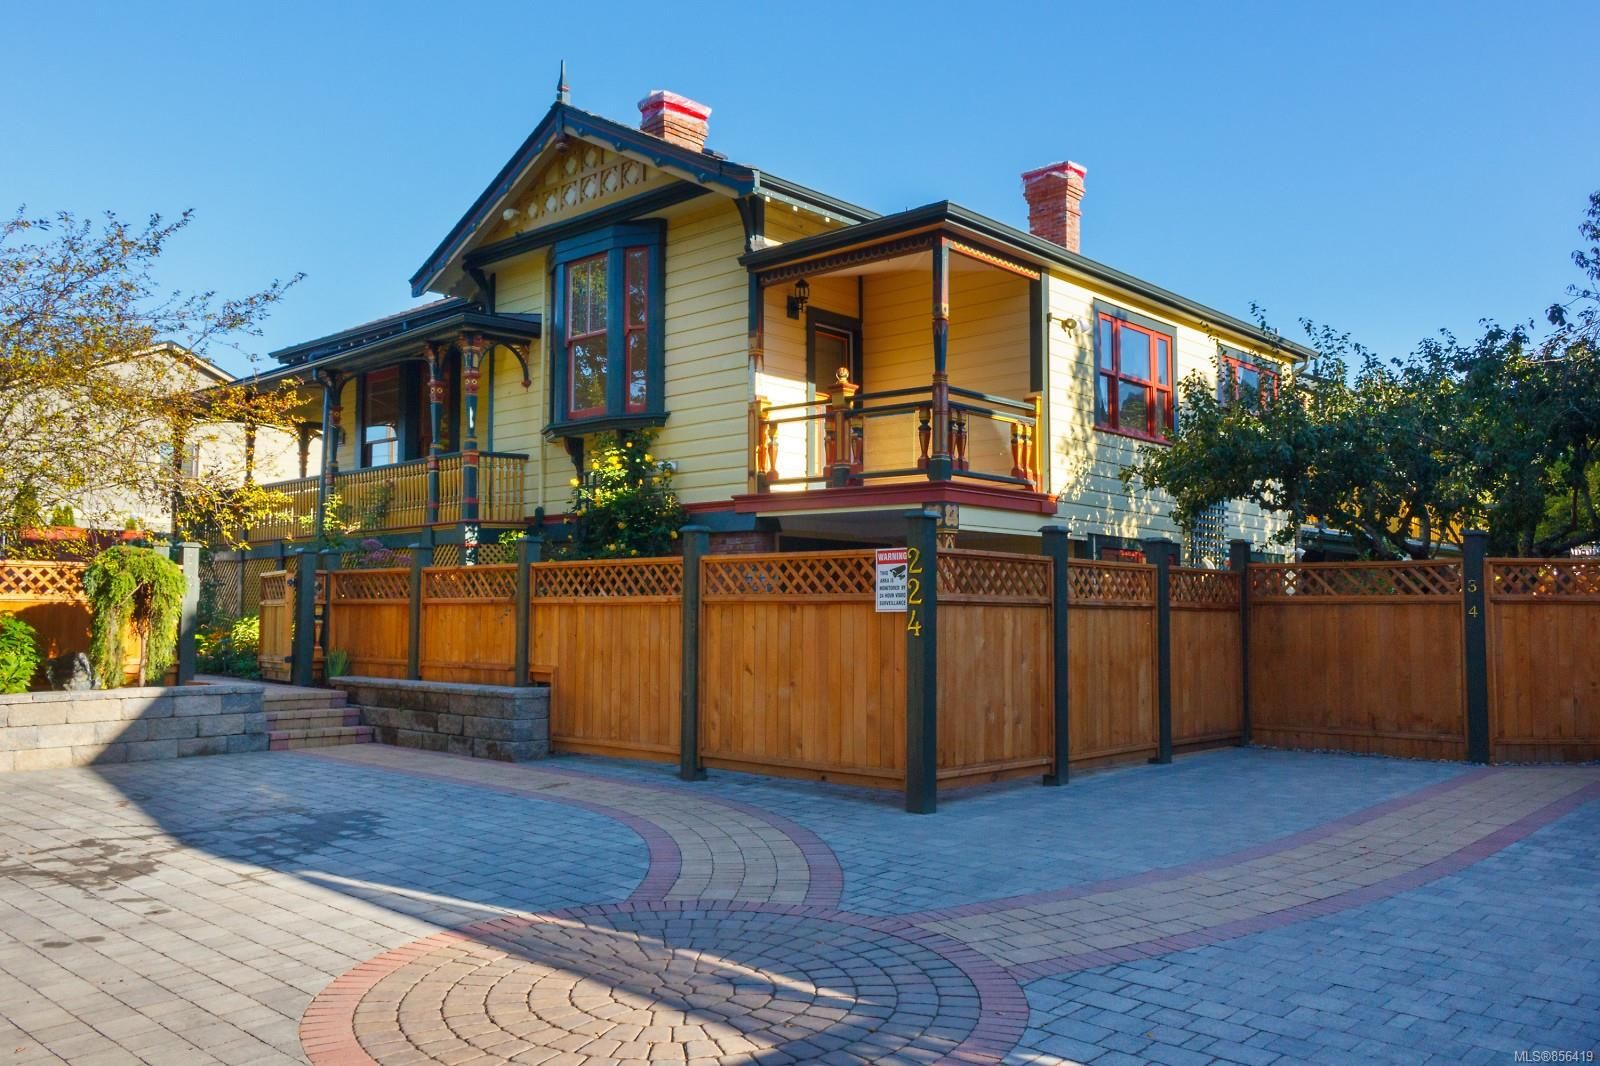 Main Photo: 1 224 Superior St in : Vi James Bay Row/Townhouse for sale (Victoria)  : MLS®# 856419